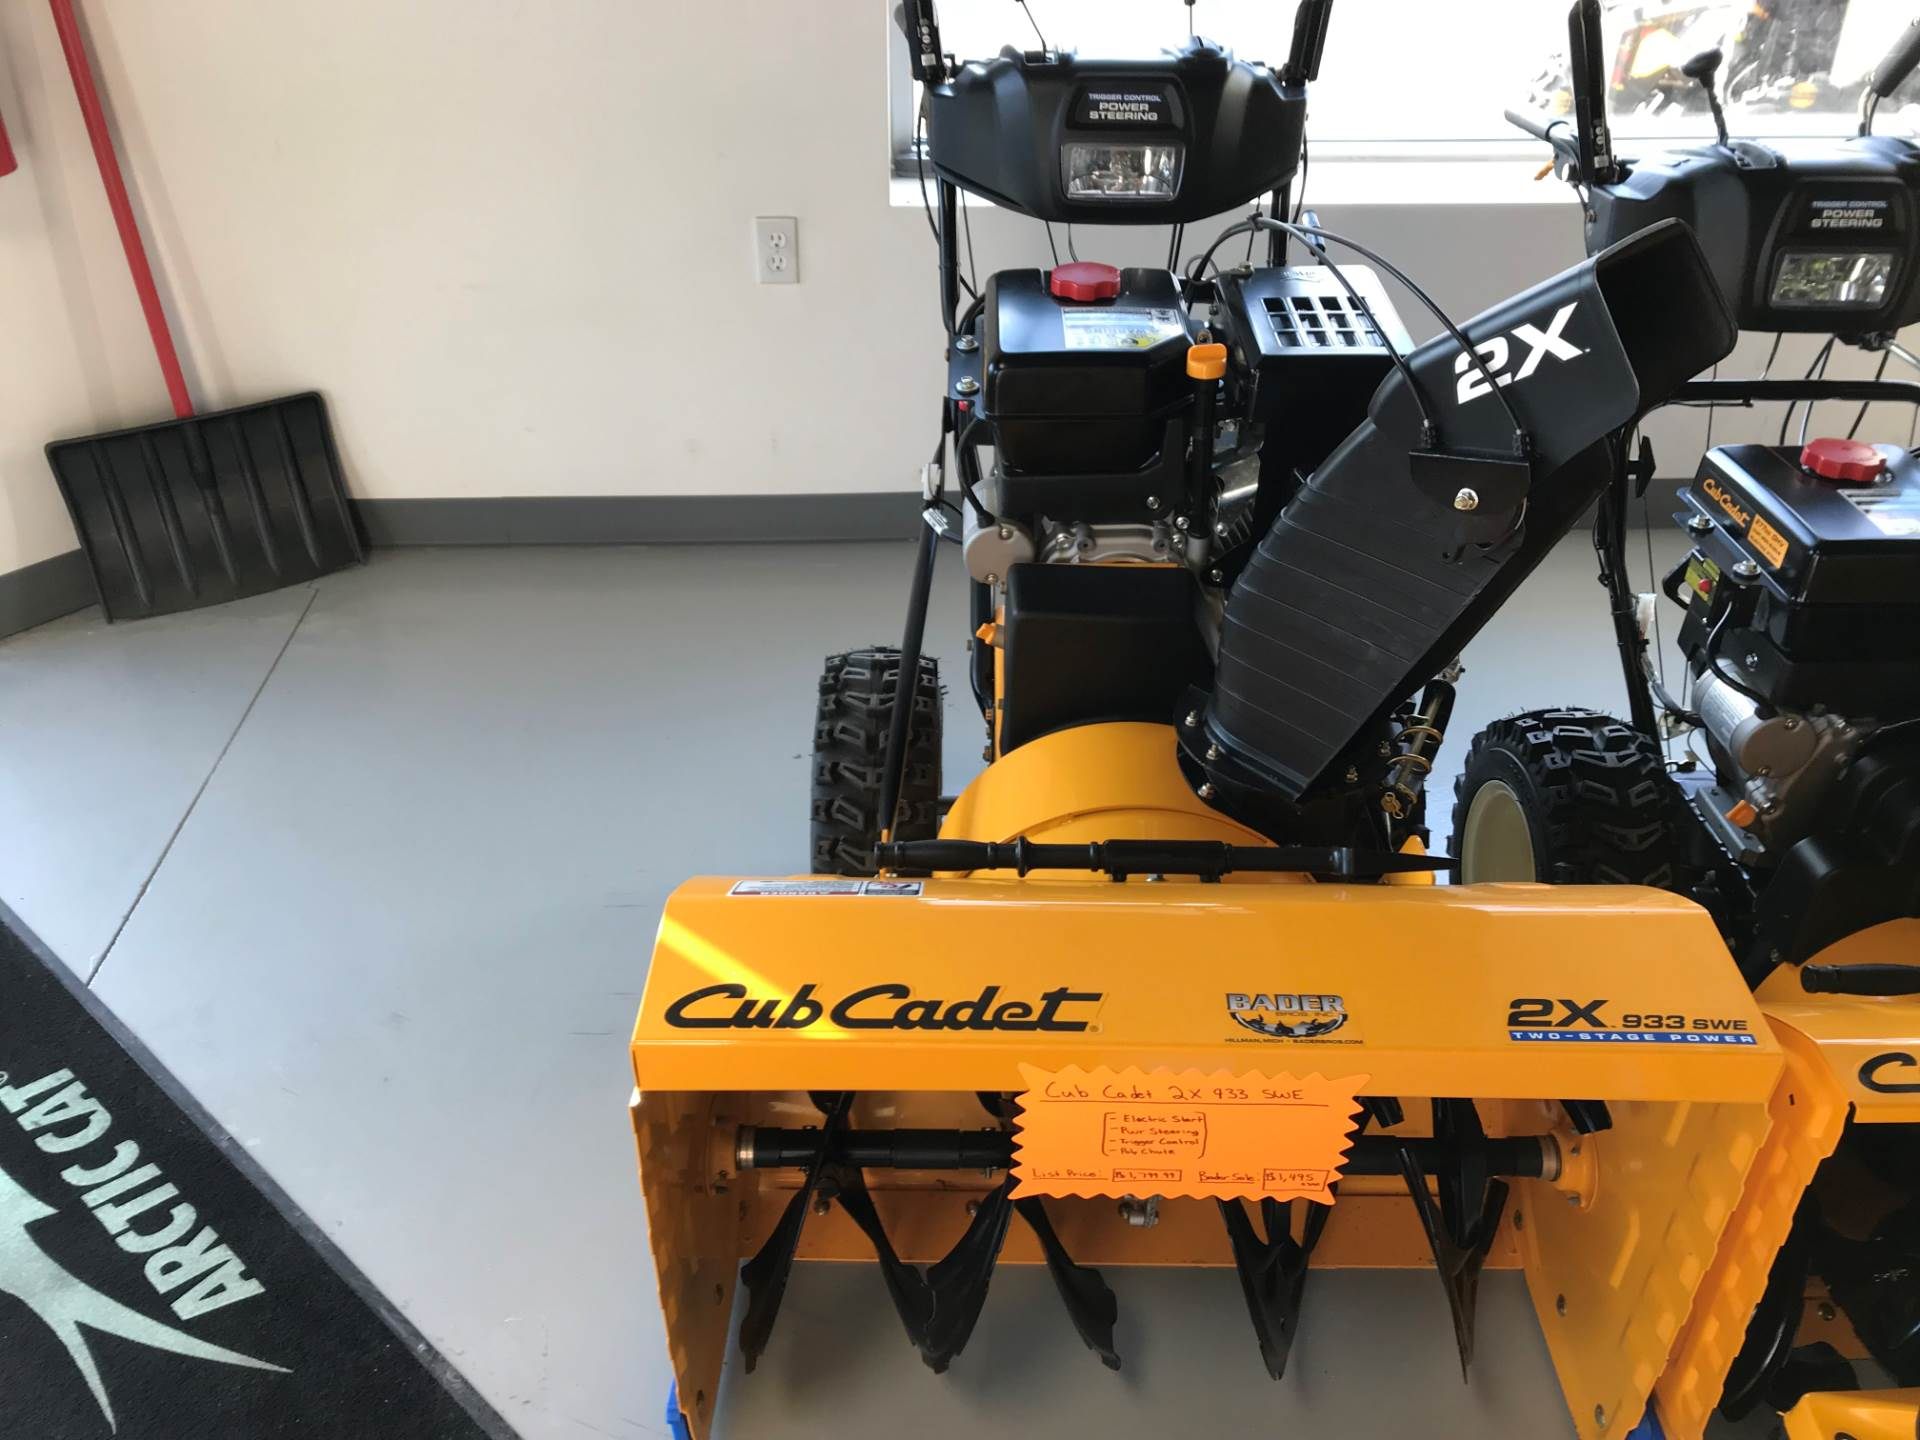 2016 Cub Cadet 2X 933 SWE in Hillman, Michigan